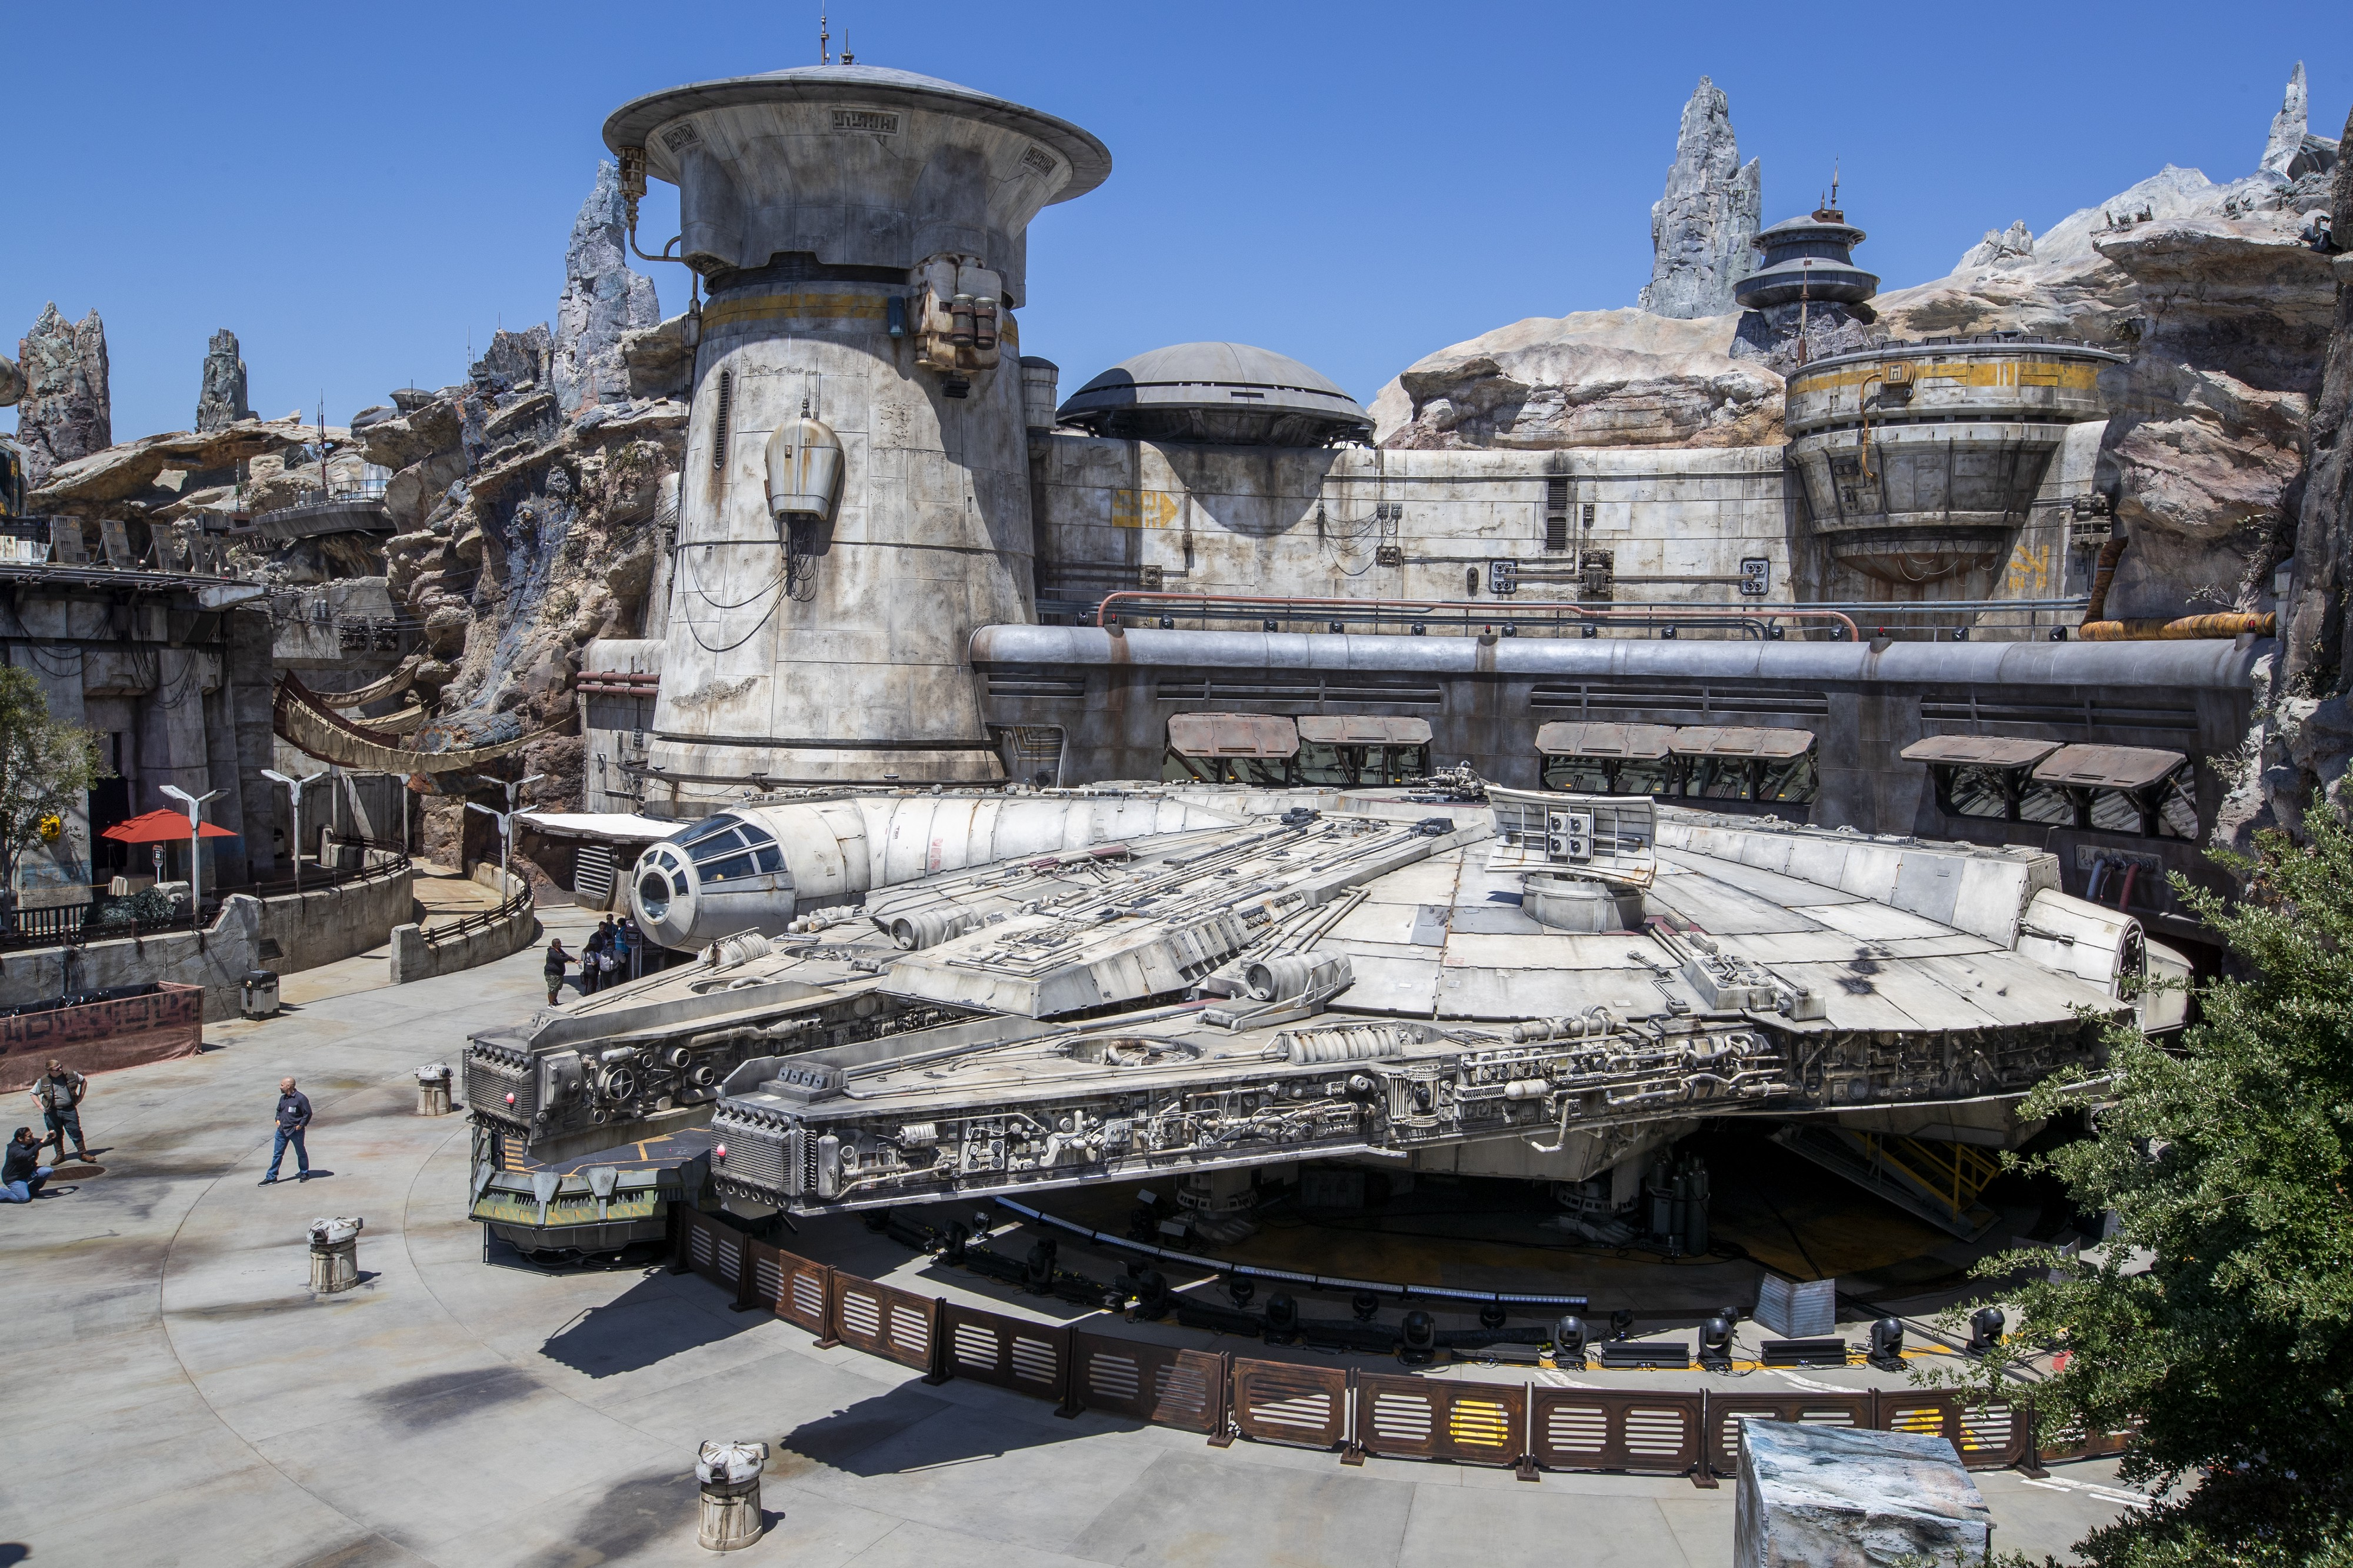 The Star Wars Disney Theme Park Is a Little Too Authentic | by Rob Bricken  | OneZero